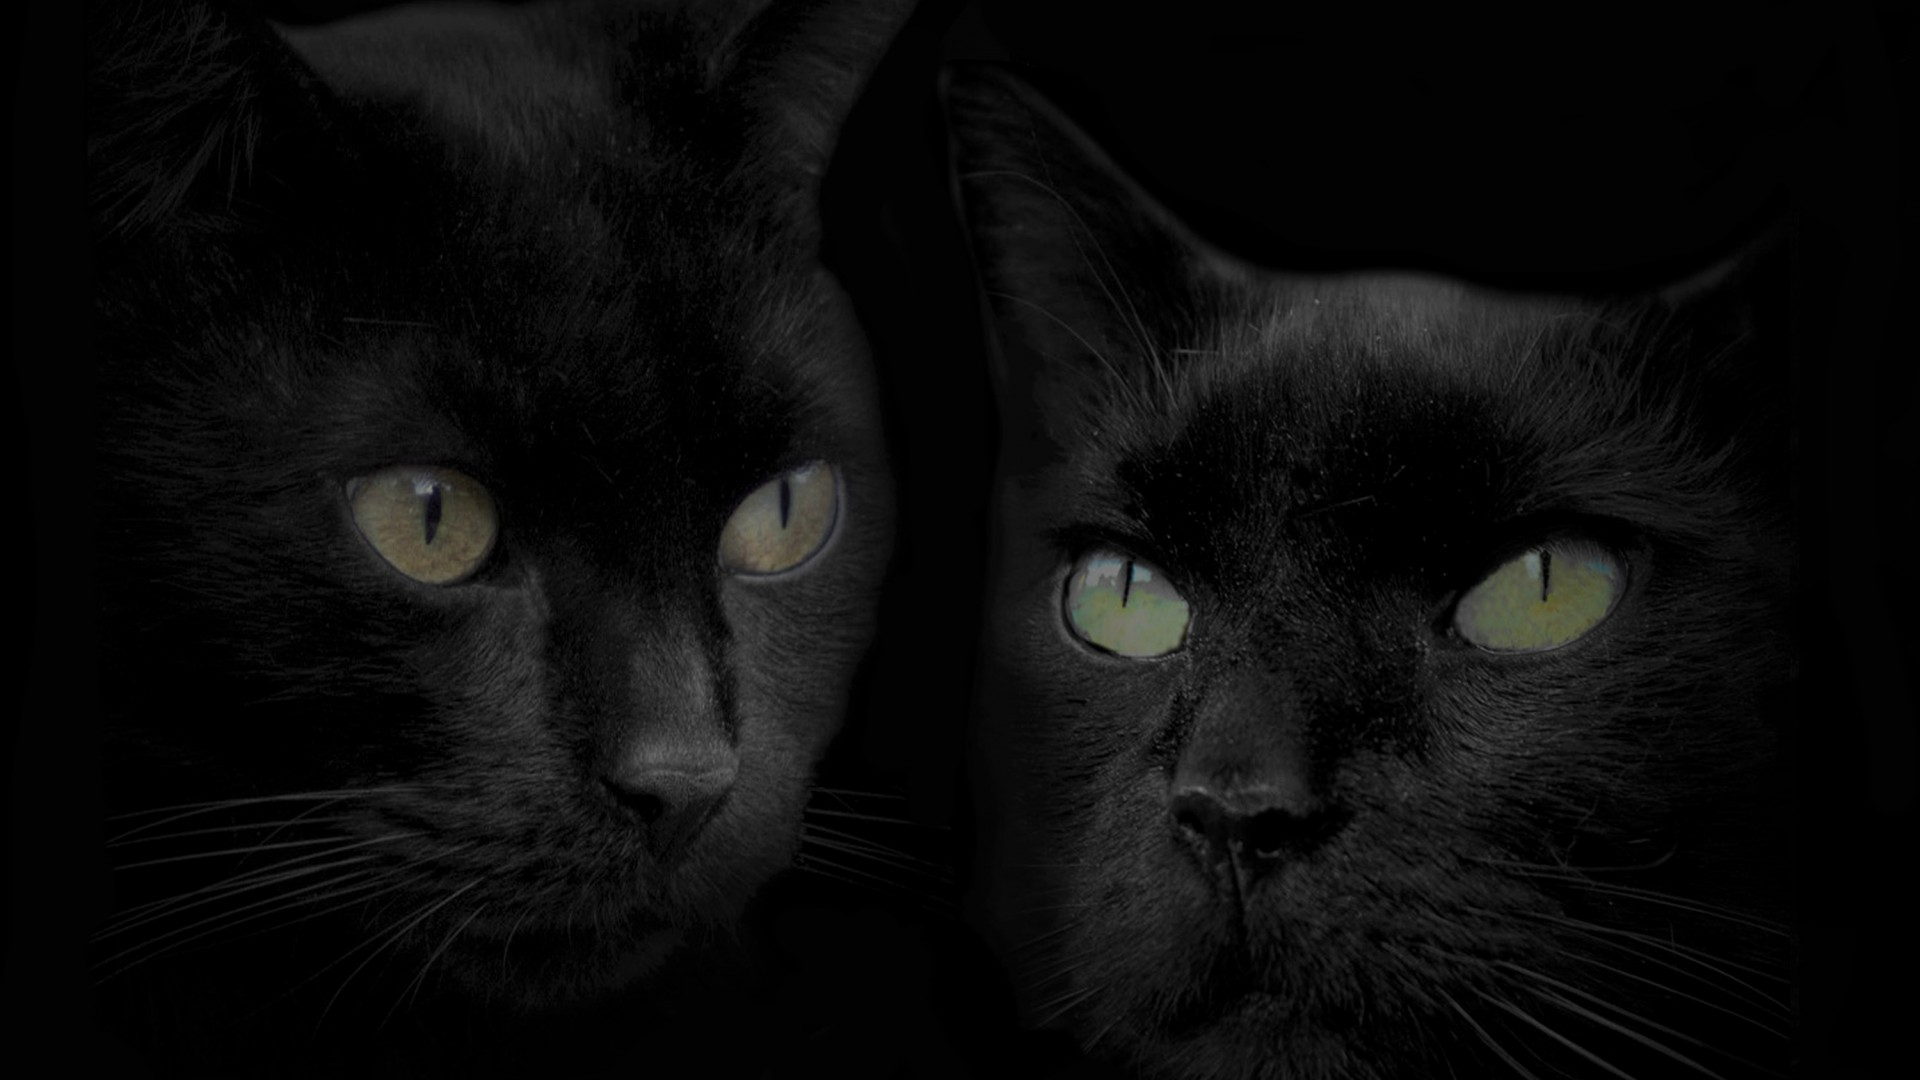 Black Cats Hd Wallpaper Background Image 1920x1080 Id 752446 Wallpaper Abyss